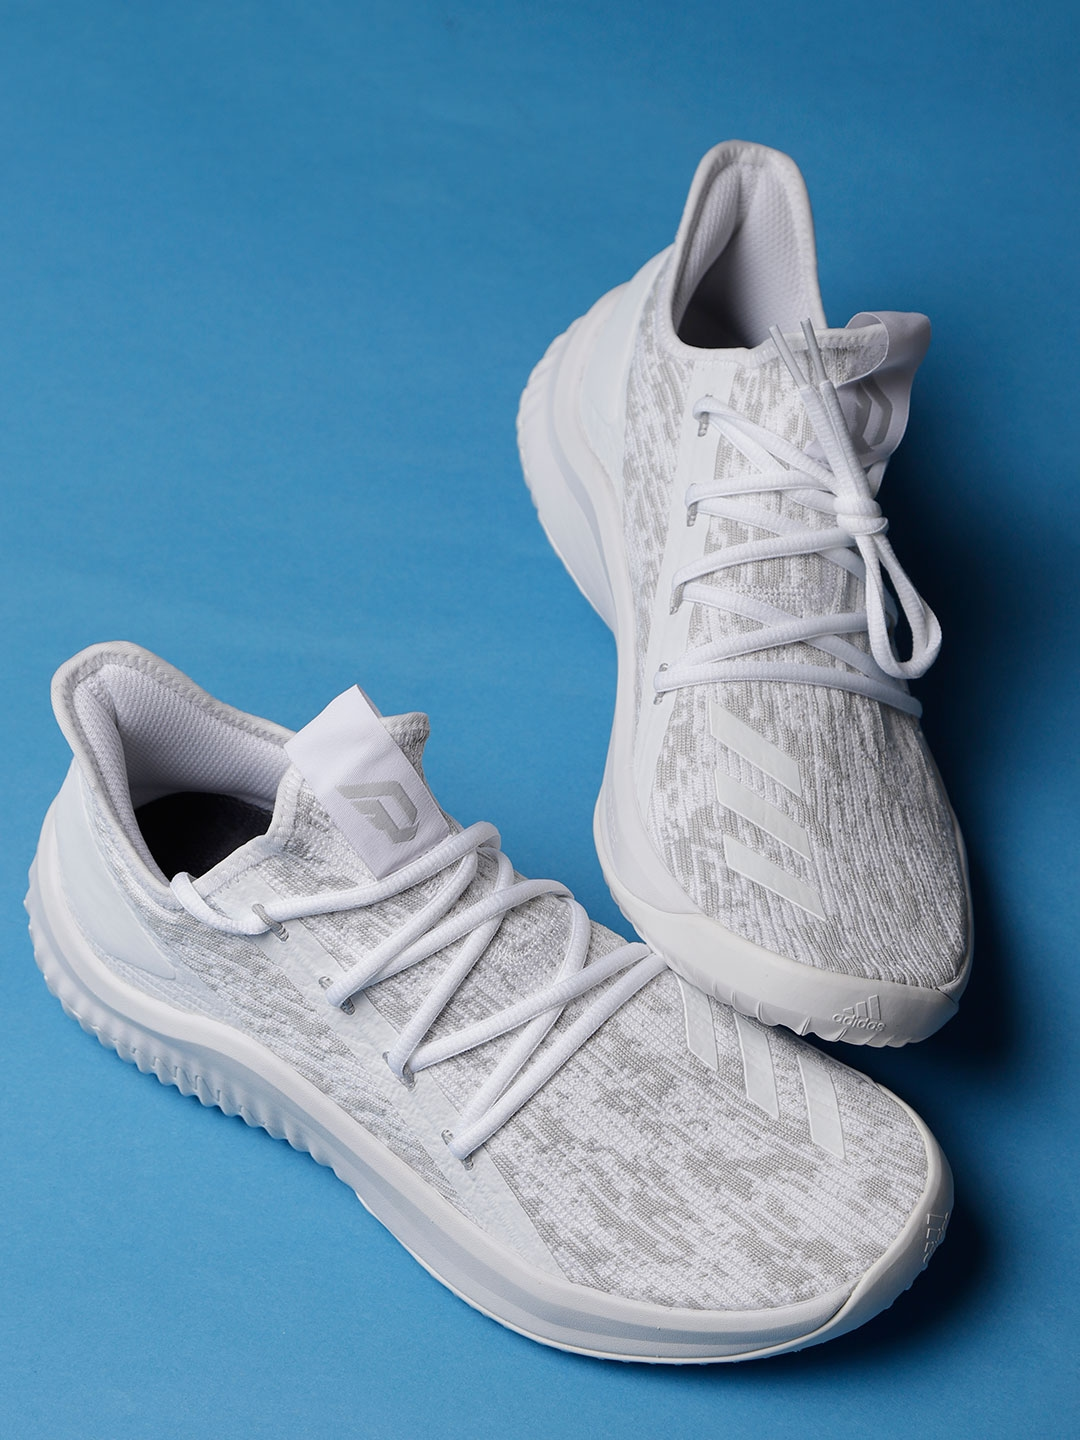 reputable site 1a445 7e4a5 ADIDAS Men White  Grey Dame D.O.L.L.A. Patterned Basketball Shoes